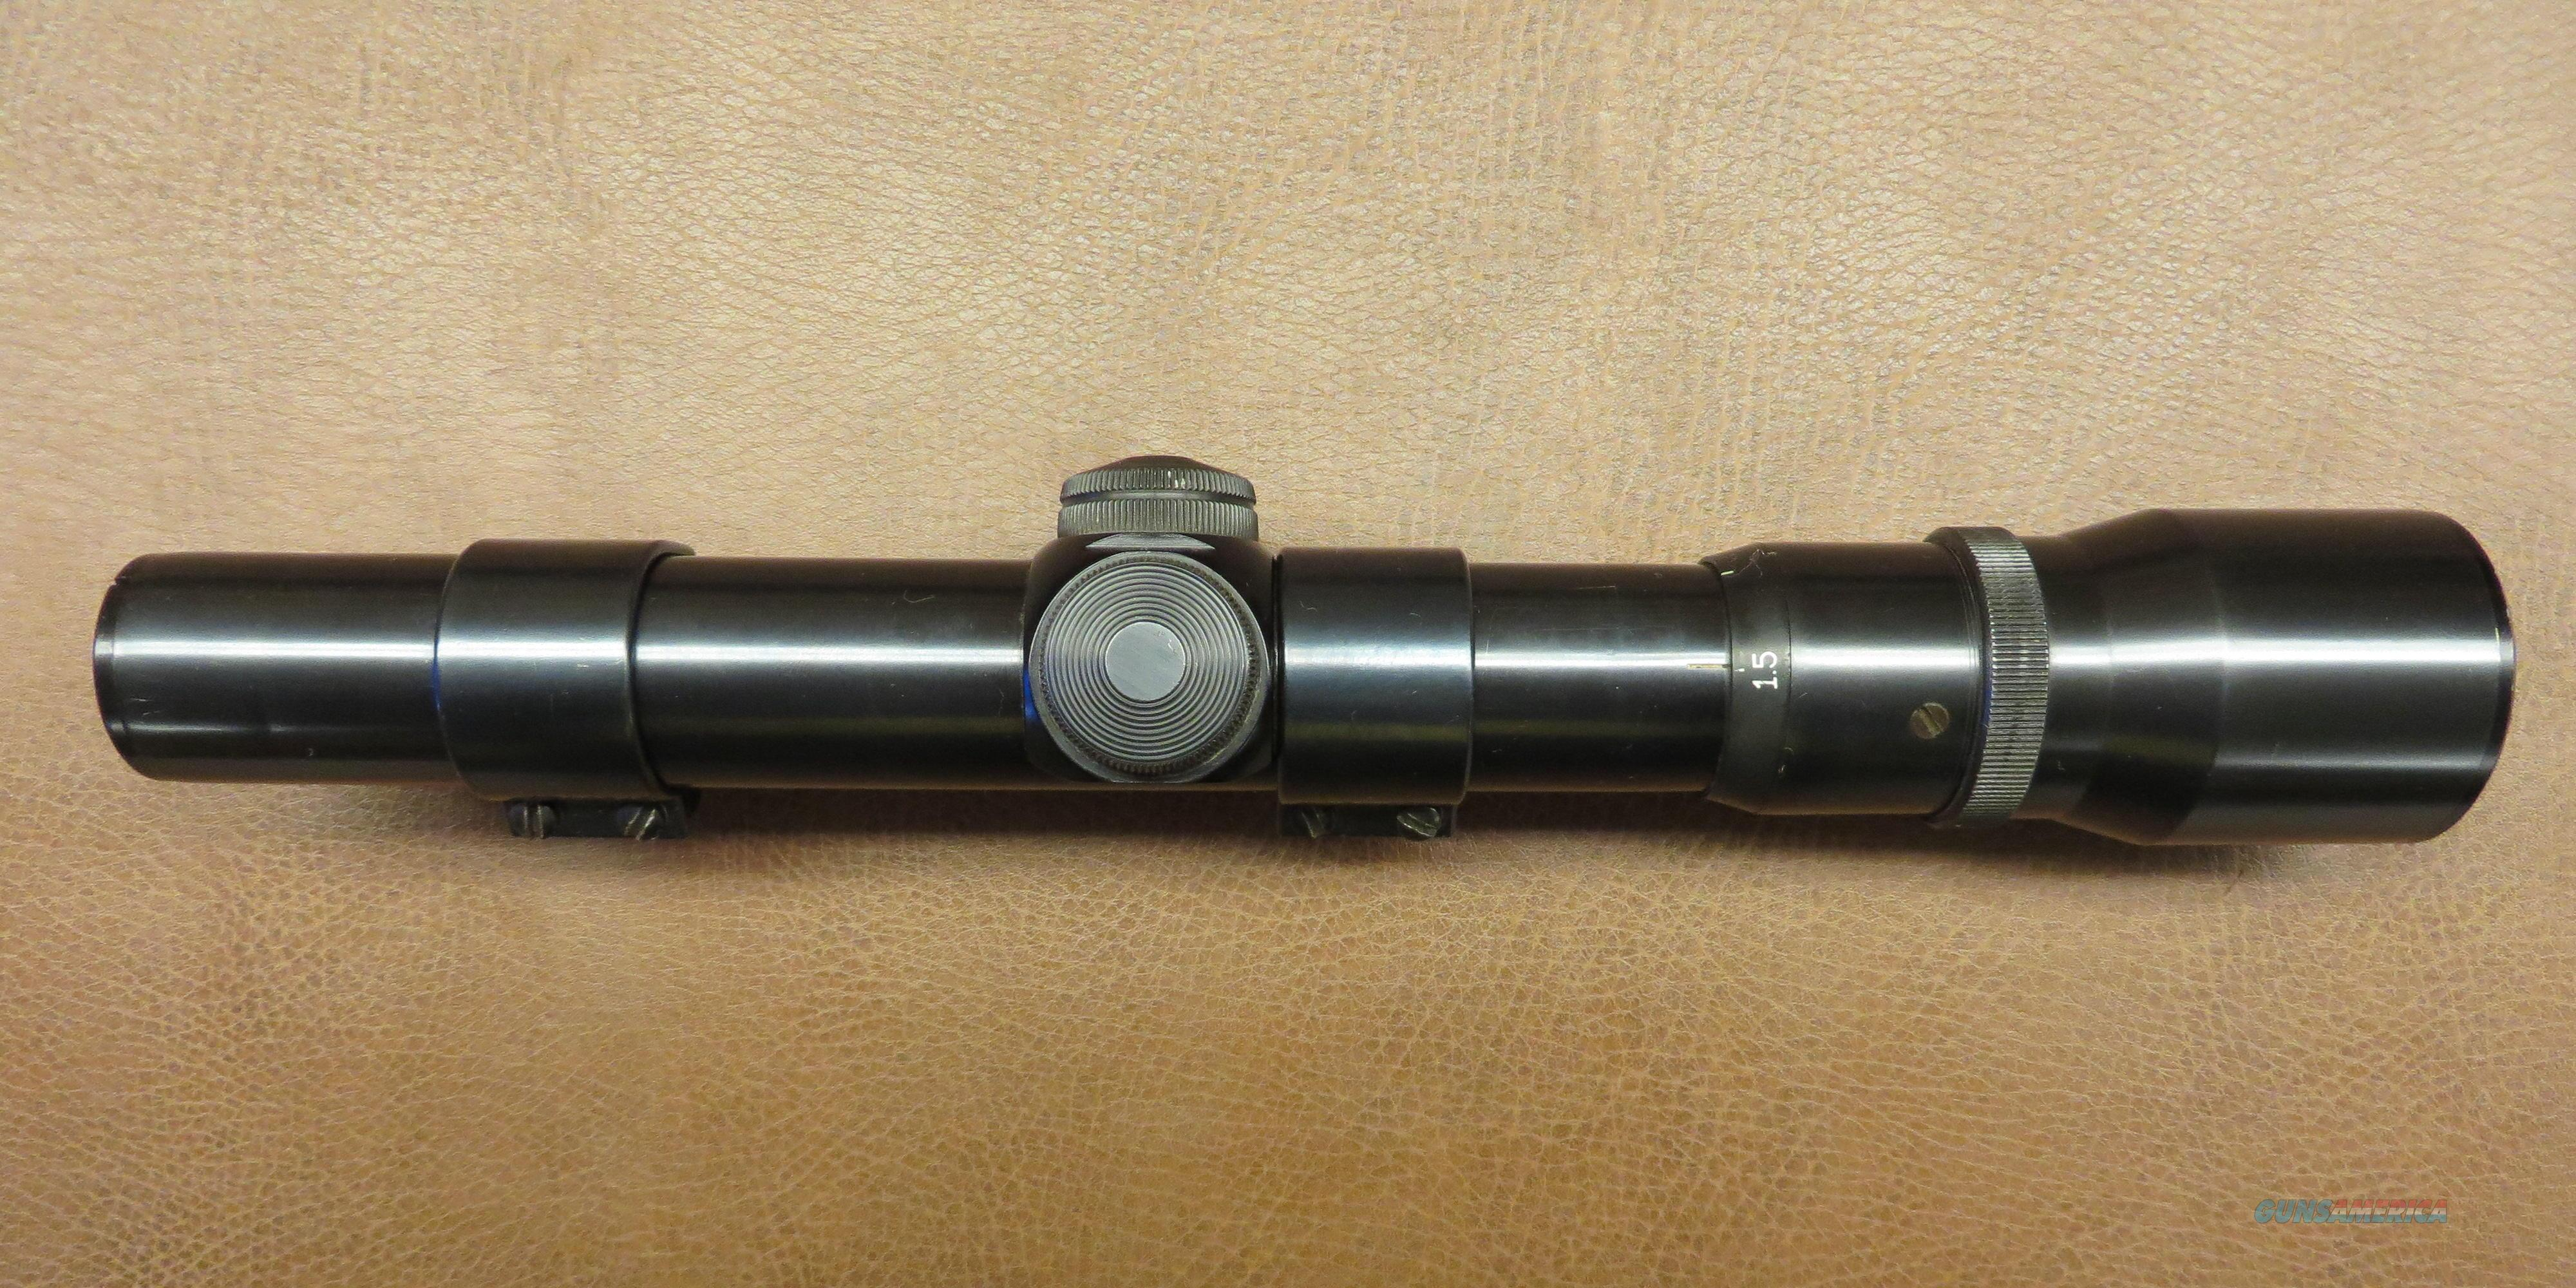 Weaver V1.5-4.5  Non-Guns > Scopes/Mounts/Rings & Optics > Rifle Scopes > Variable Focal Length